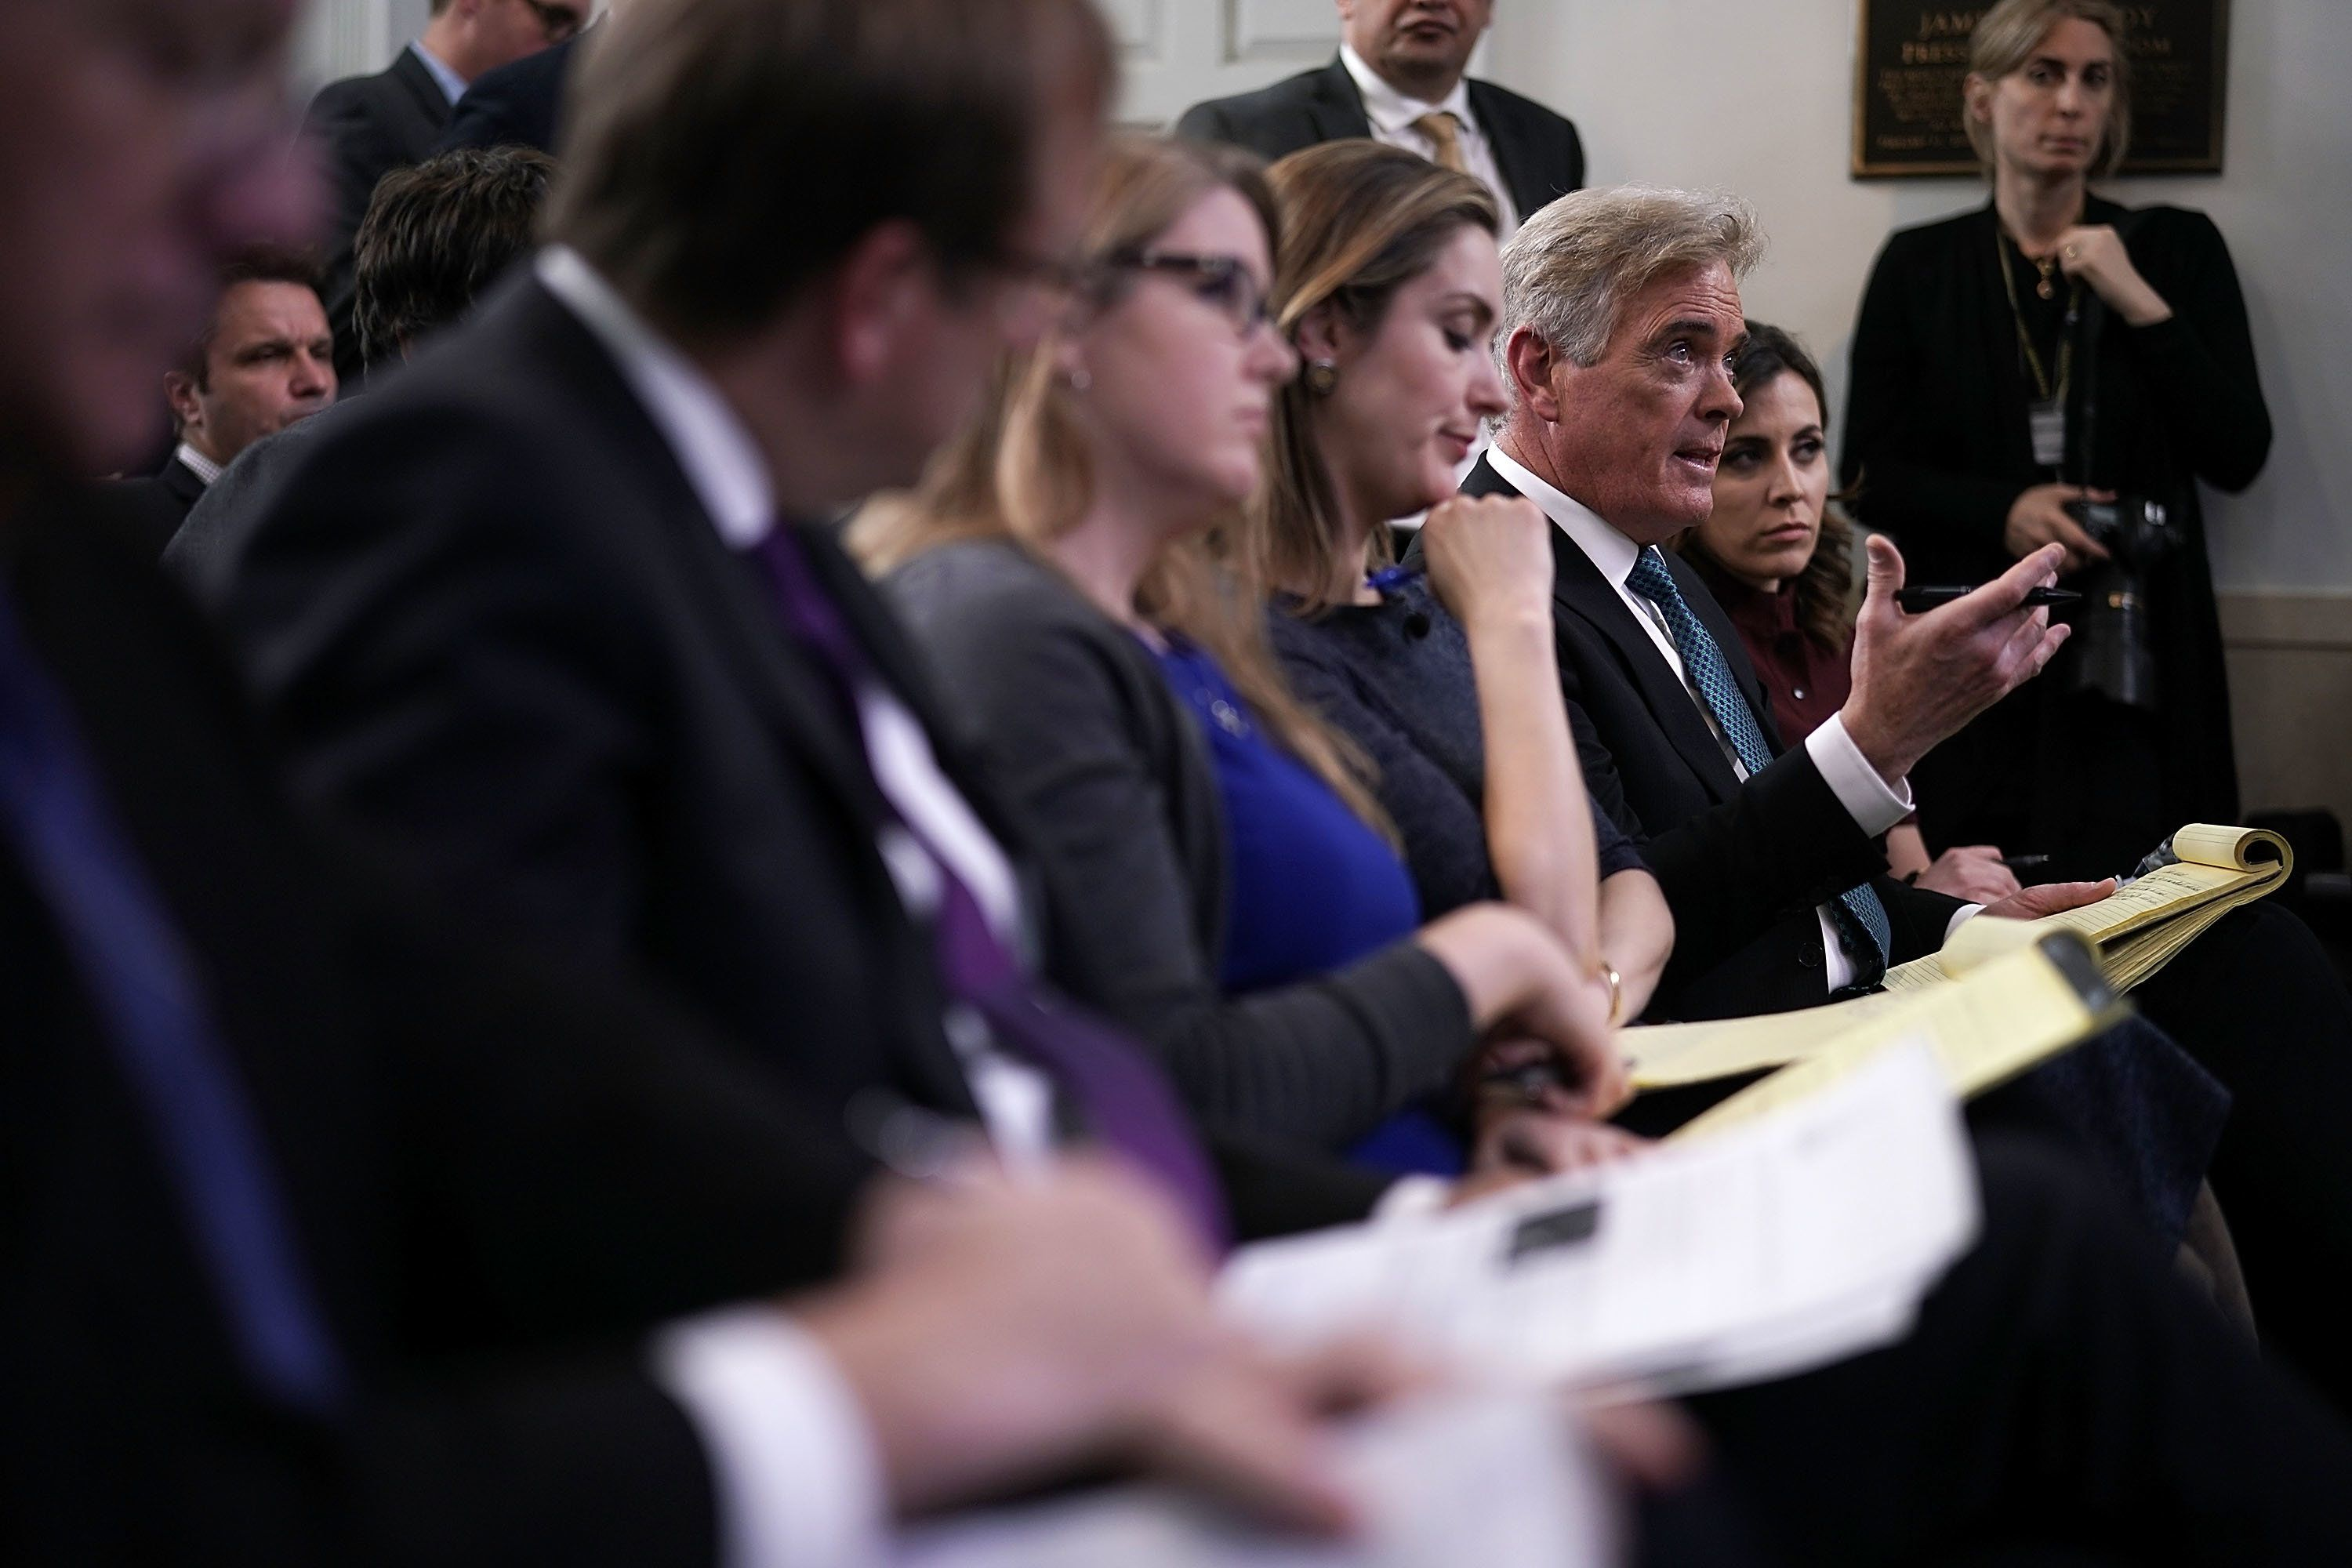 WASHINGTON, DC - FEBRUARY 27:   Fox News Chief White House Correspondent John Roberts asks a question during a daily news briefing in the James Brady Press Briefing Room of the White House February 27, 2018 in Washington, DC. White House Press Secretary Sarah Sanders held the daily briefing and filled questions from members of the White House press corps.  (Photo by Alex Wong/Getty Images)